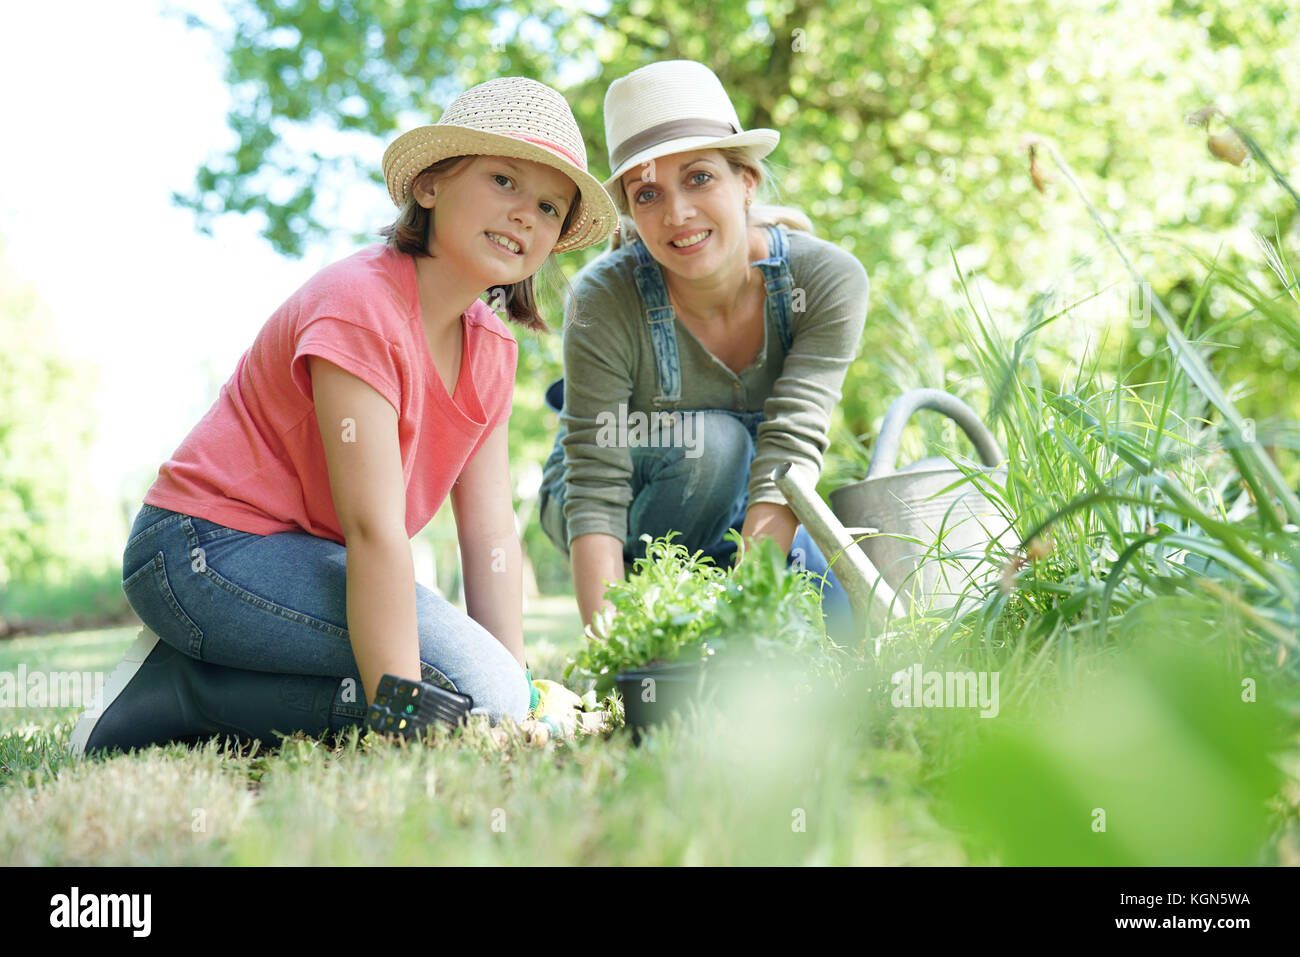 Mother and daughter gardening together - Stock Image